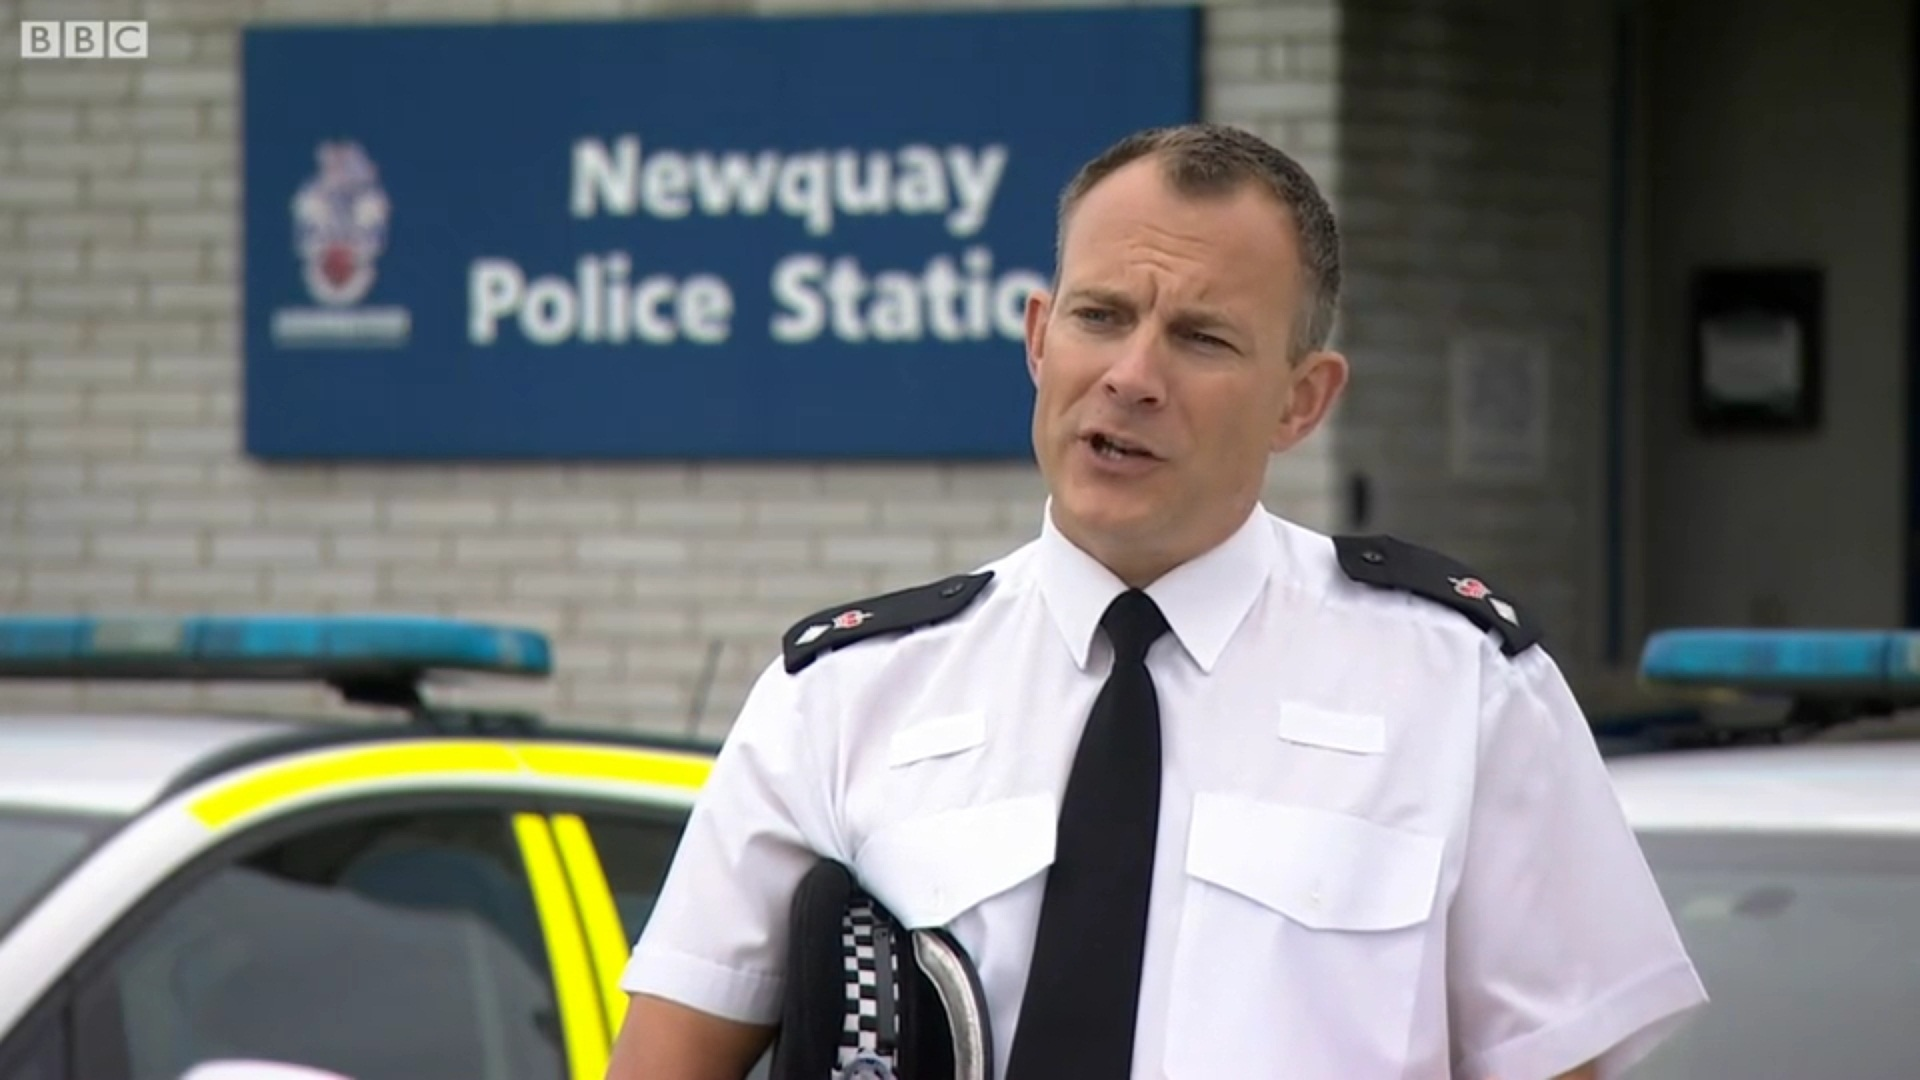 Newquay: Policeman airlifted to hospital with serious burns after 'attempted murder'